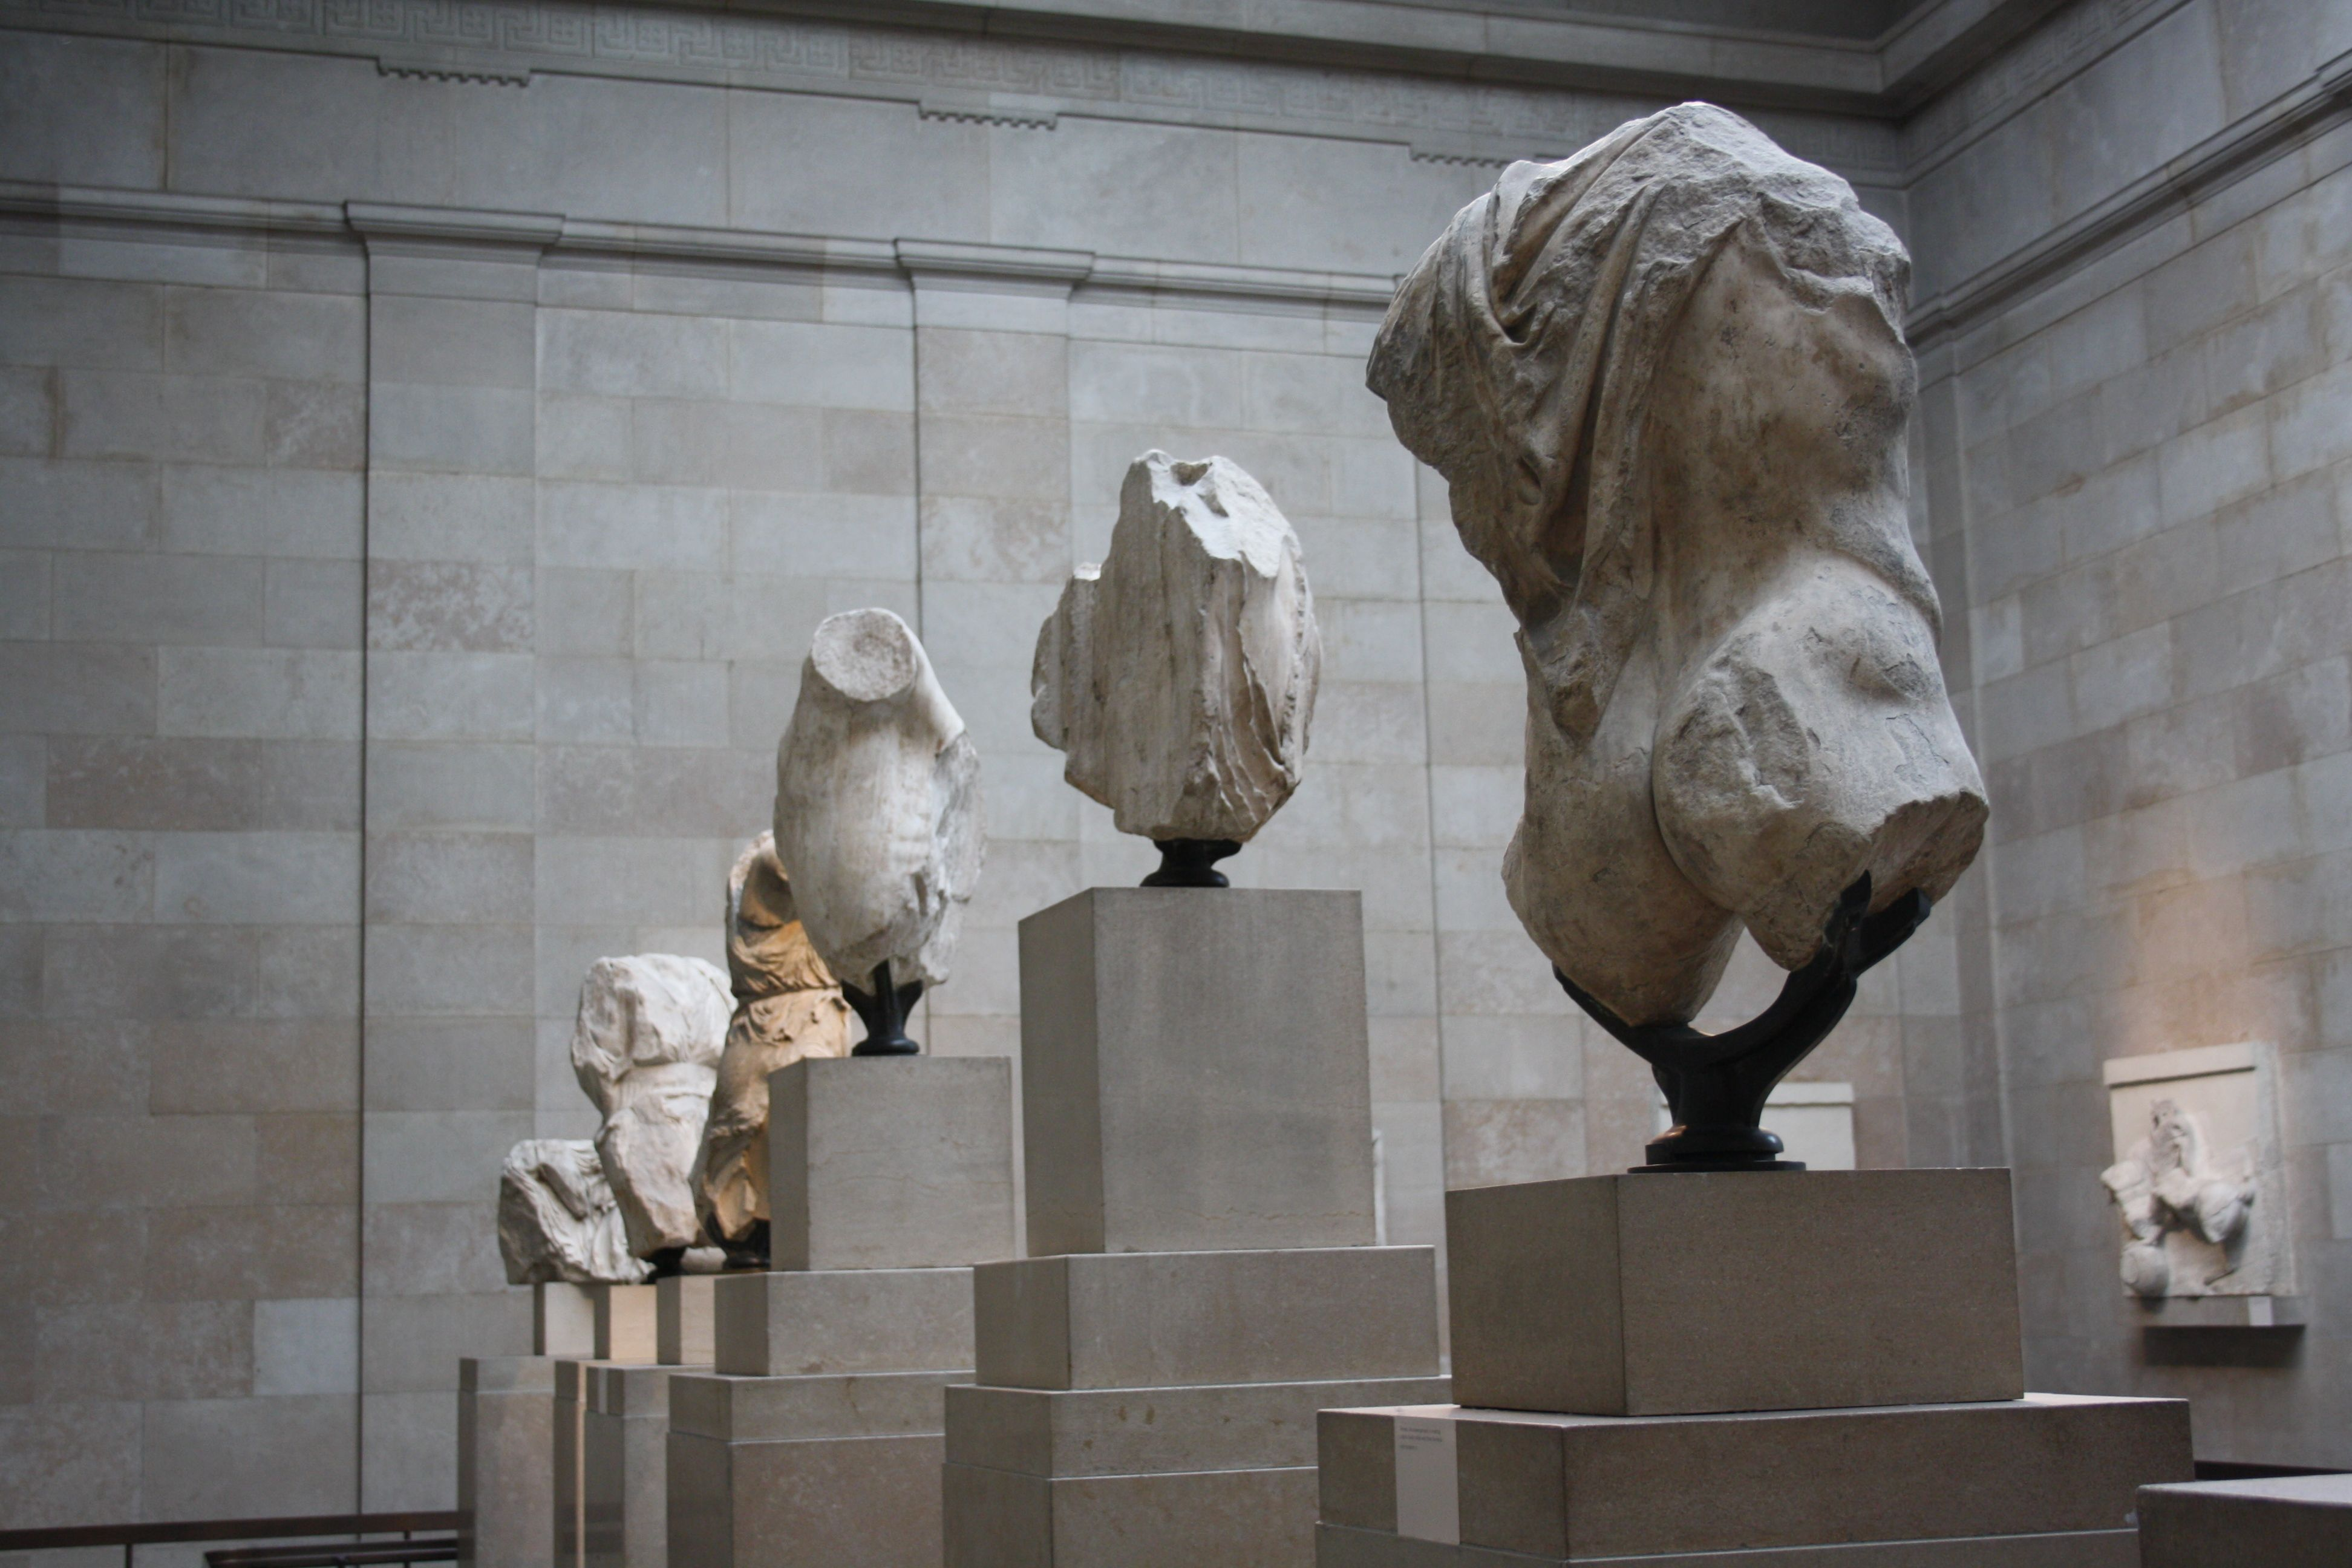 The Egyptian Room And Elgin Marbles Elgin Marbles British Museum Lion Sculpture